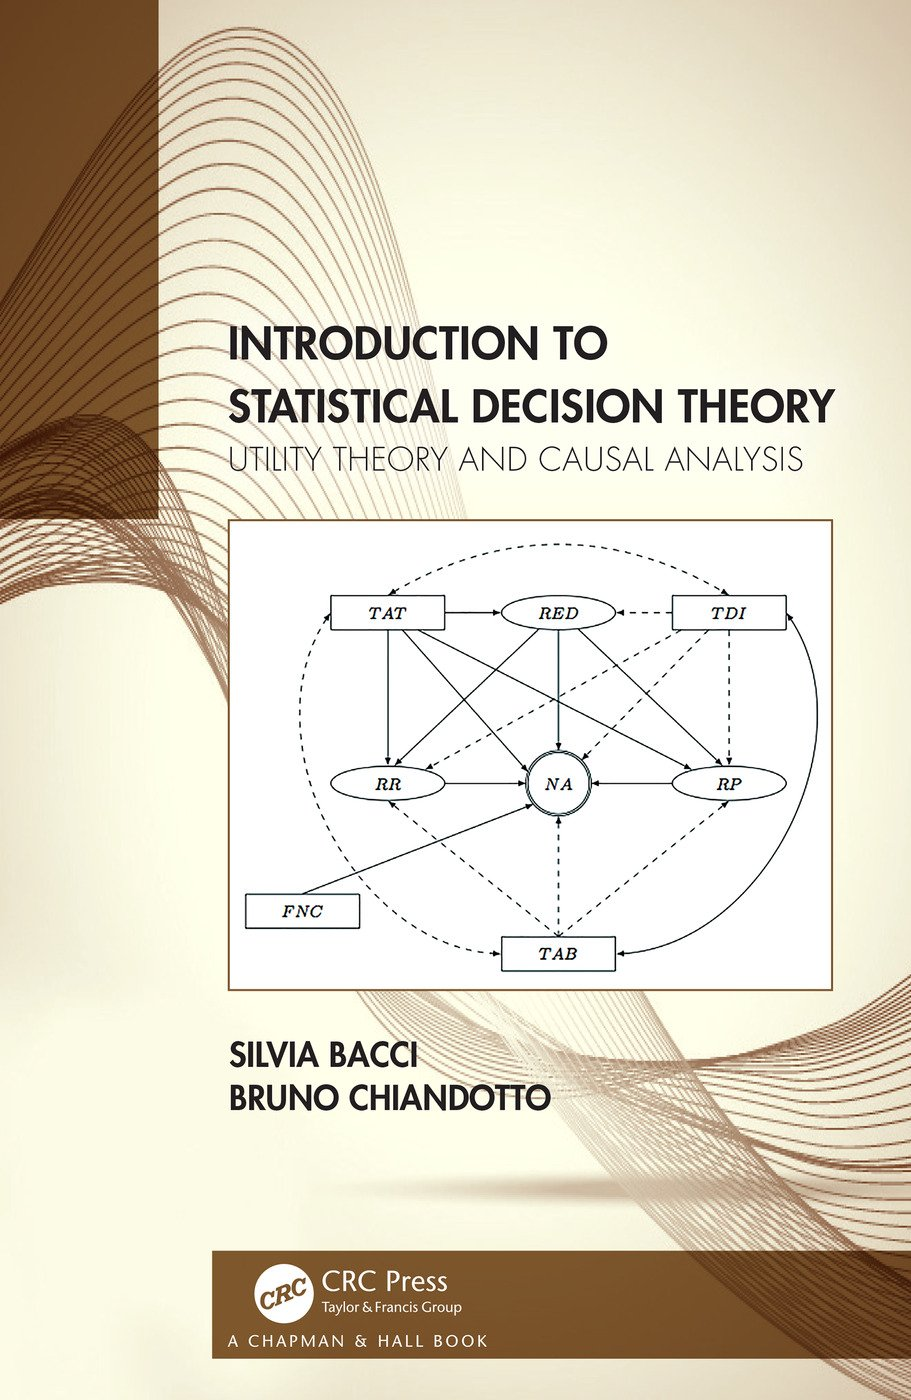 Classical and Bayesian statistical decision theory